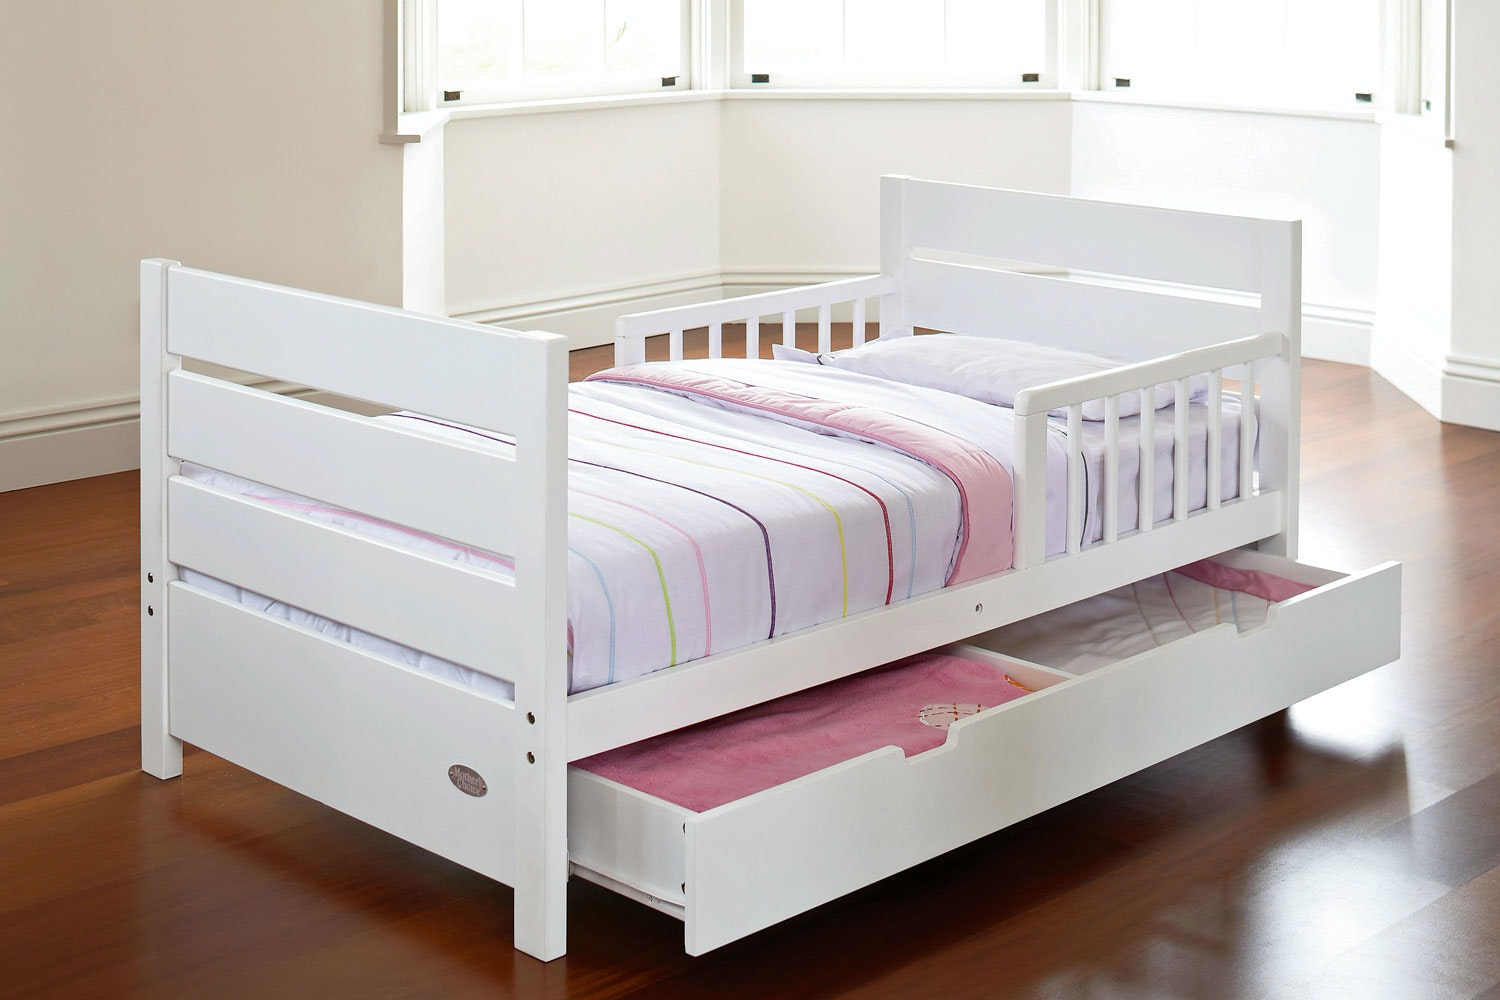 Toddler Bed With Drawers by Mothers Choice